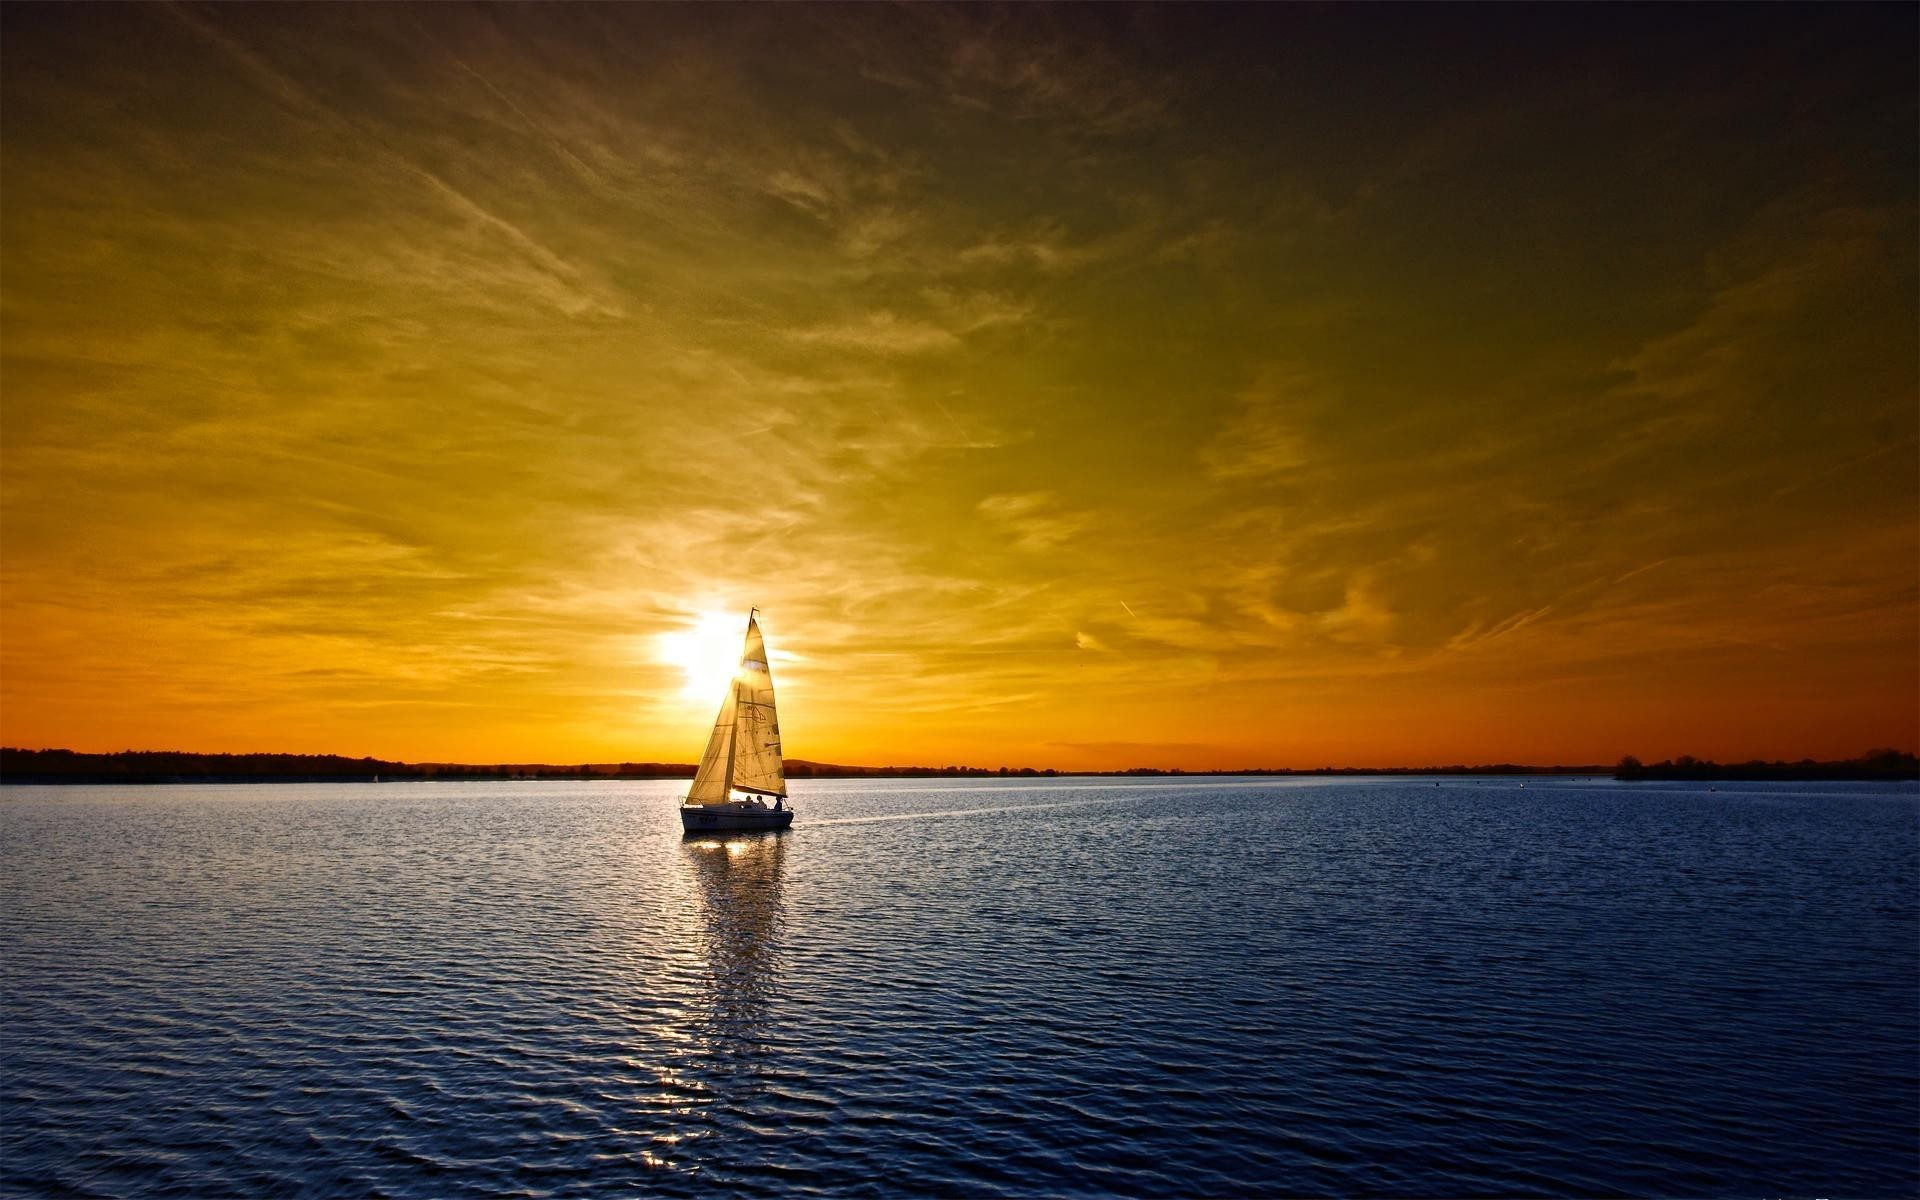 landscapes sunset water dawn dusk evening sun reflection sky sea ocean lake